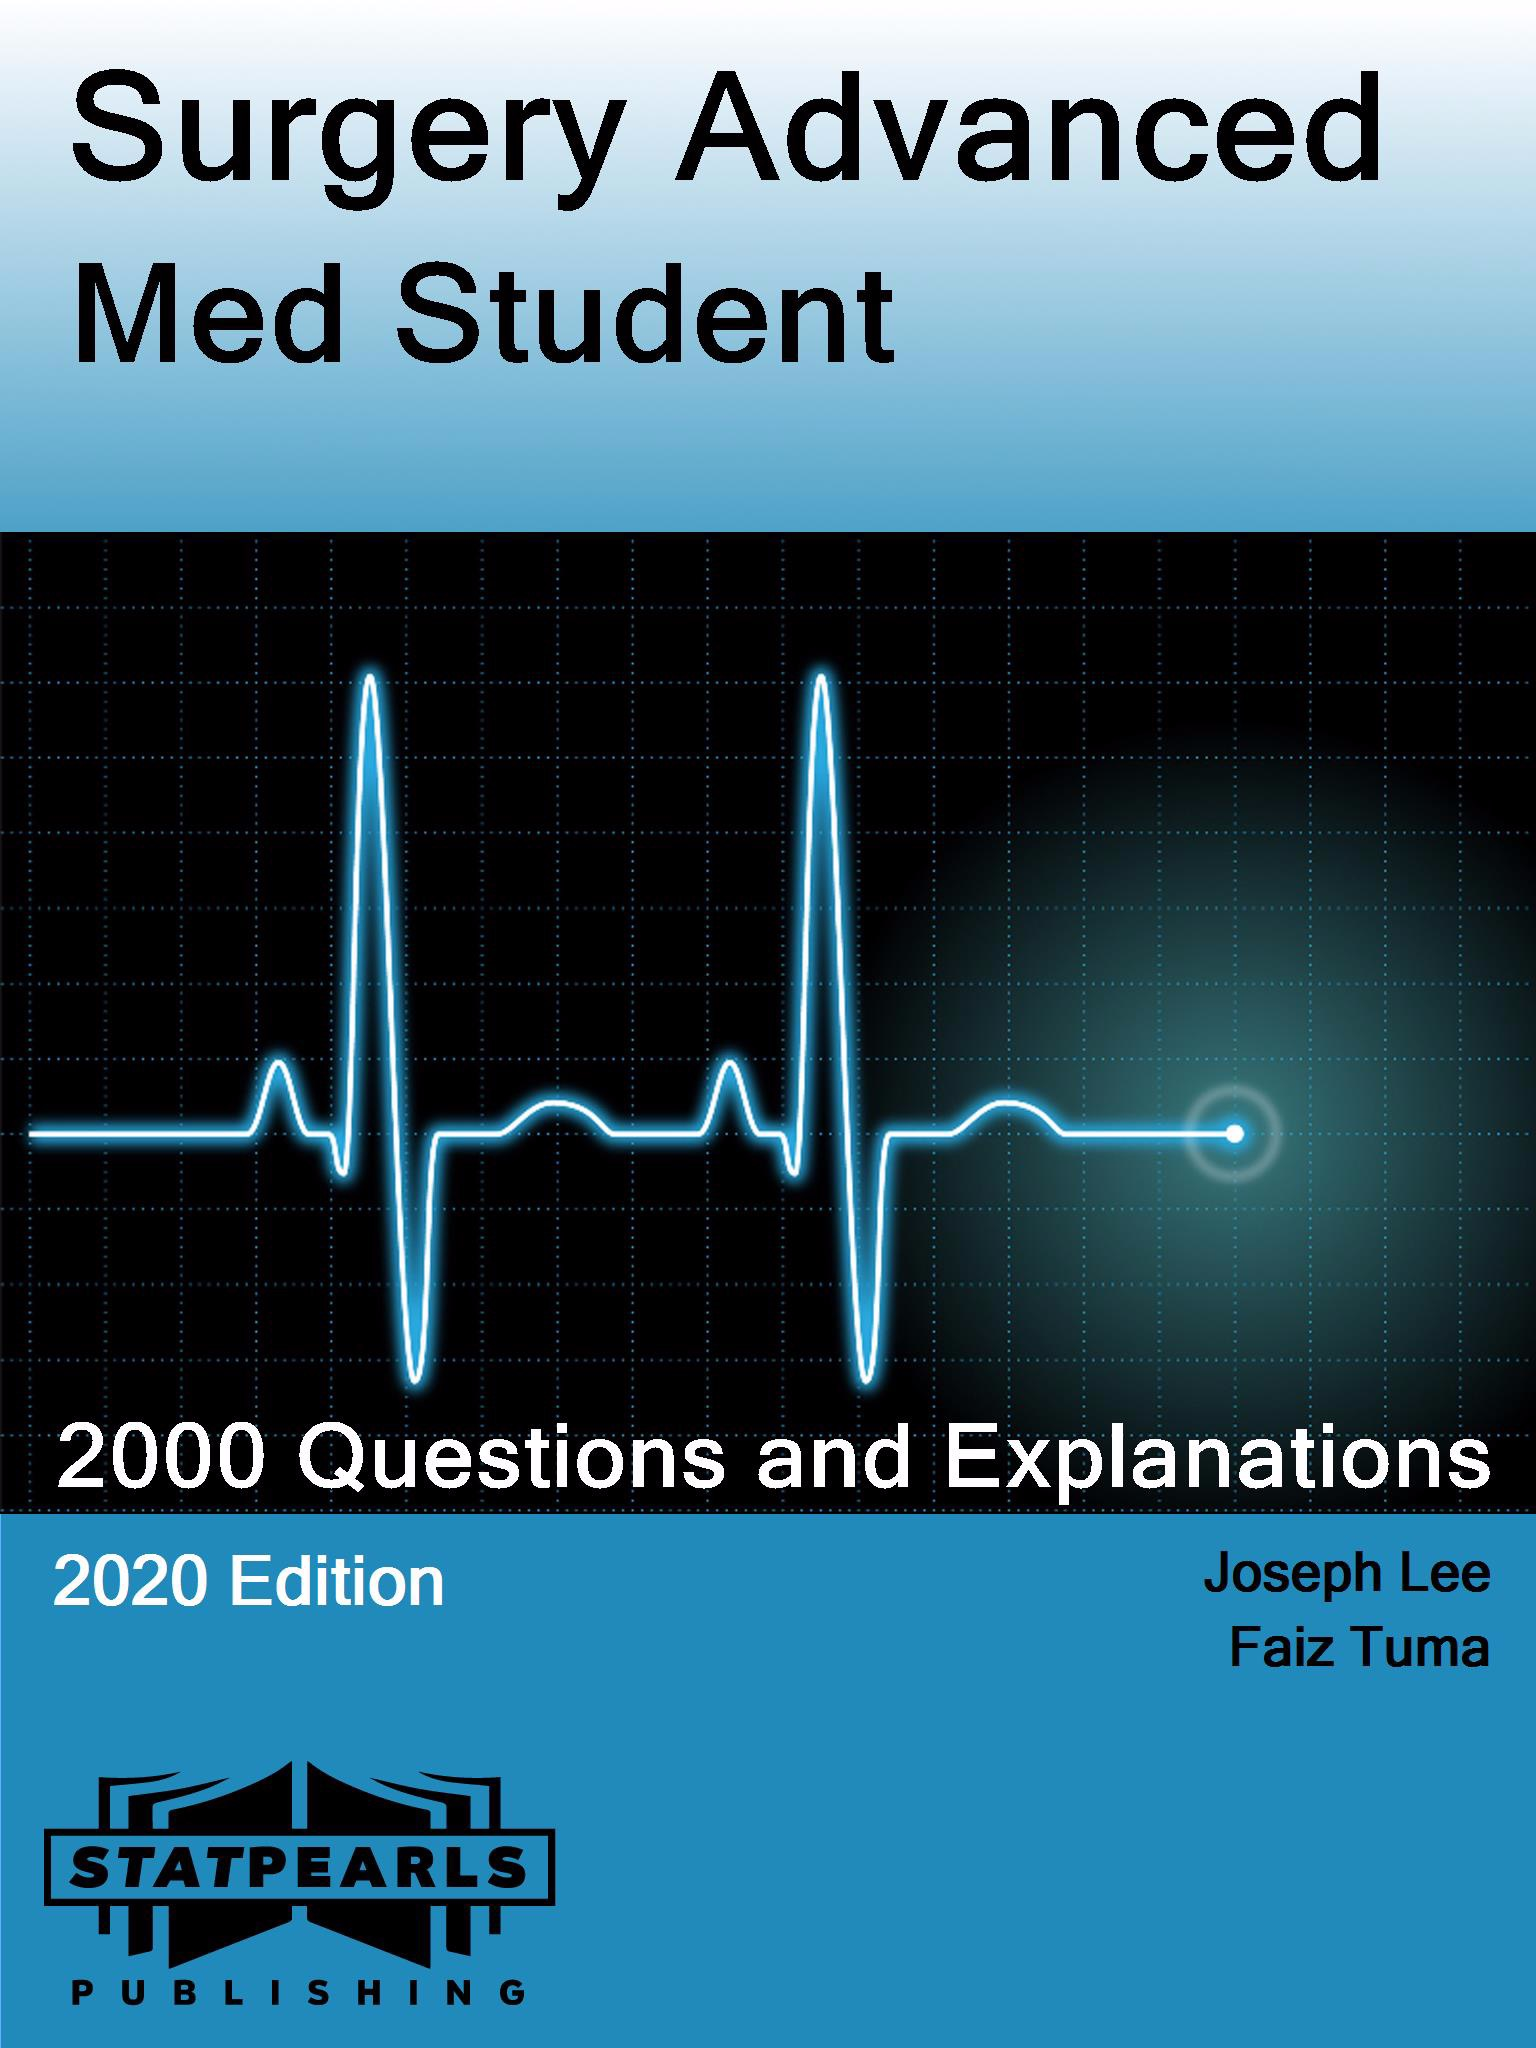 Surgery Advanced Med Student